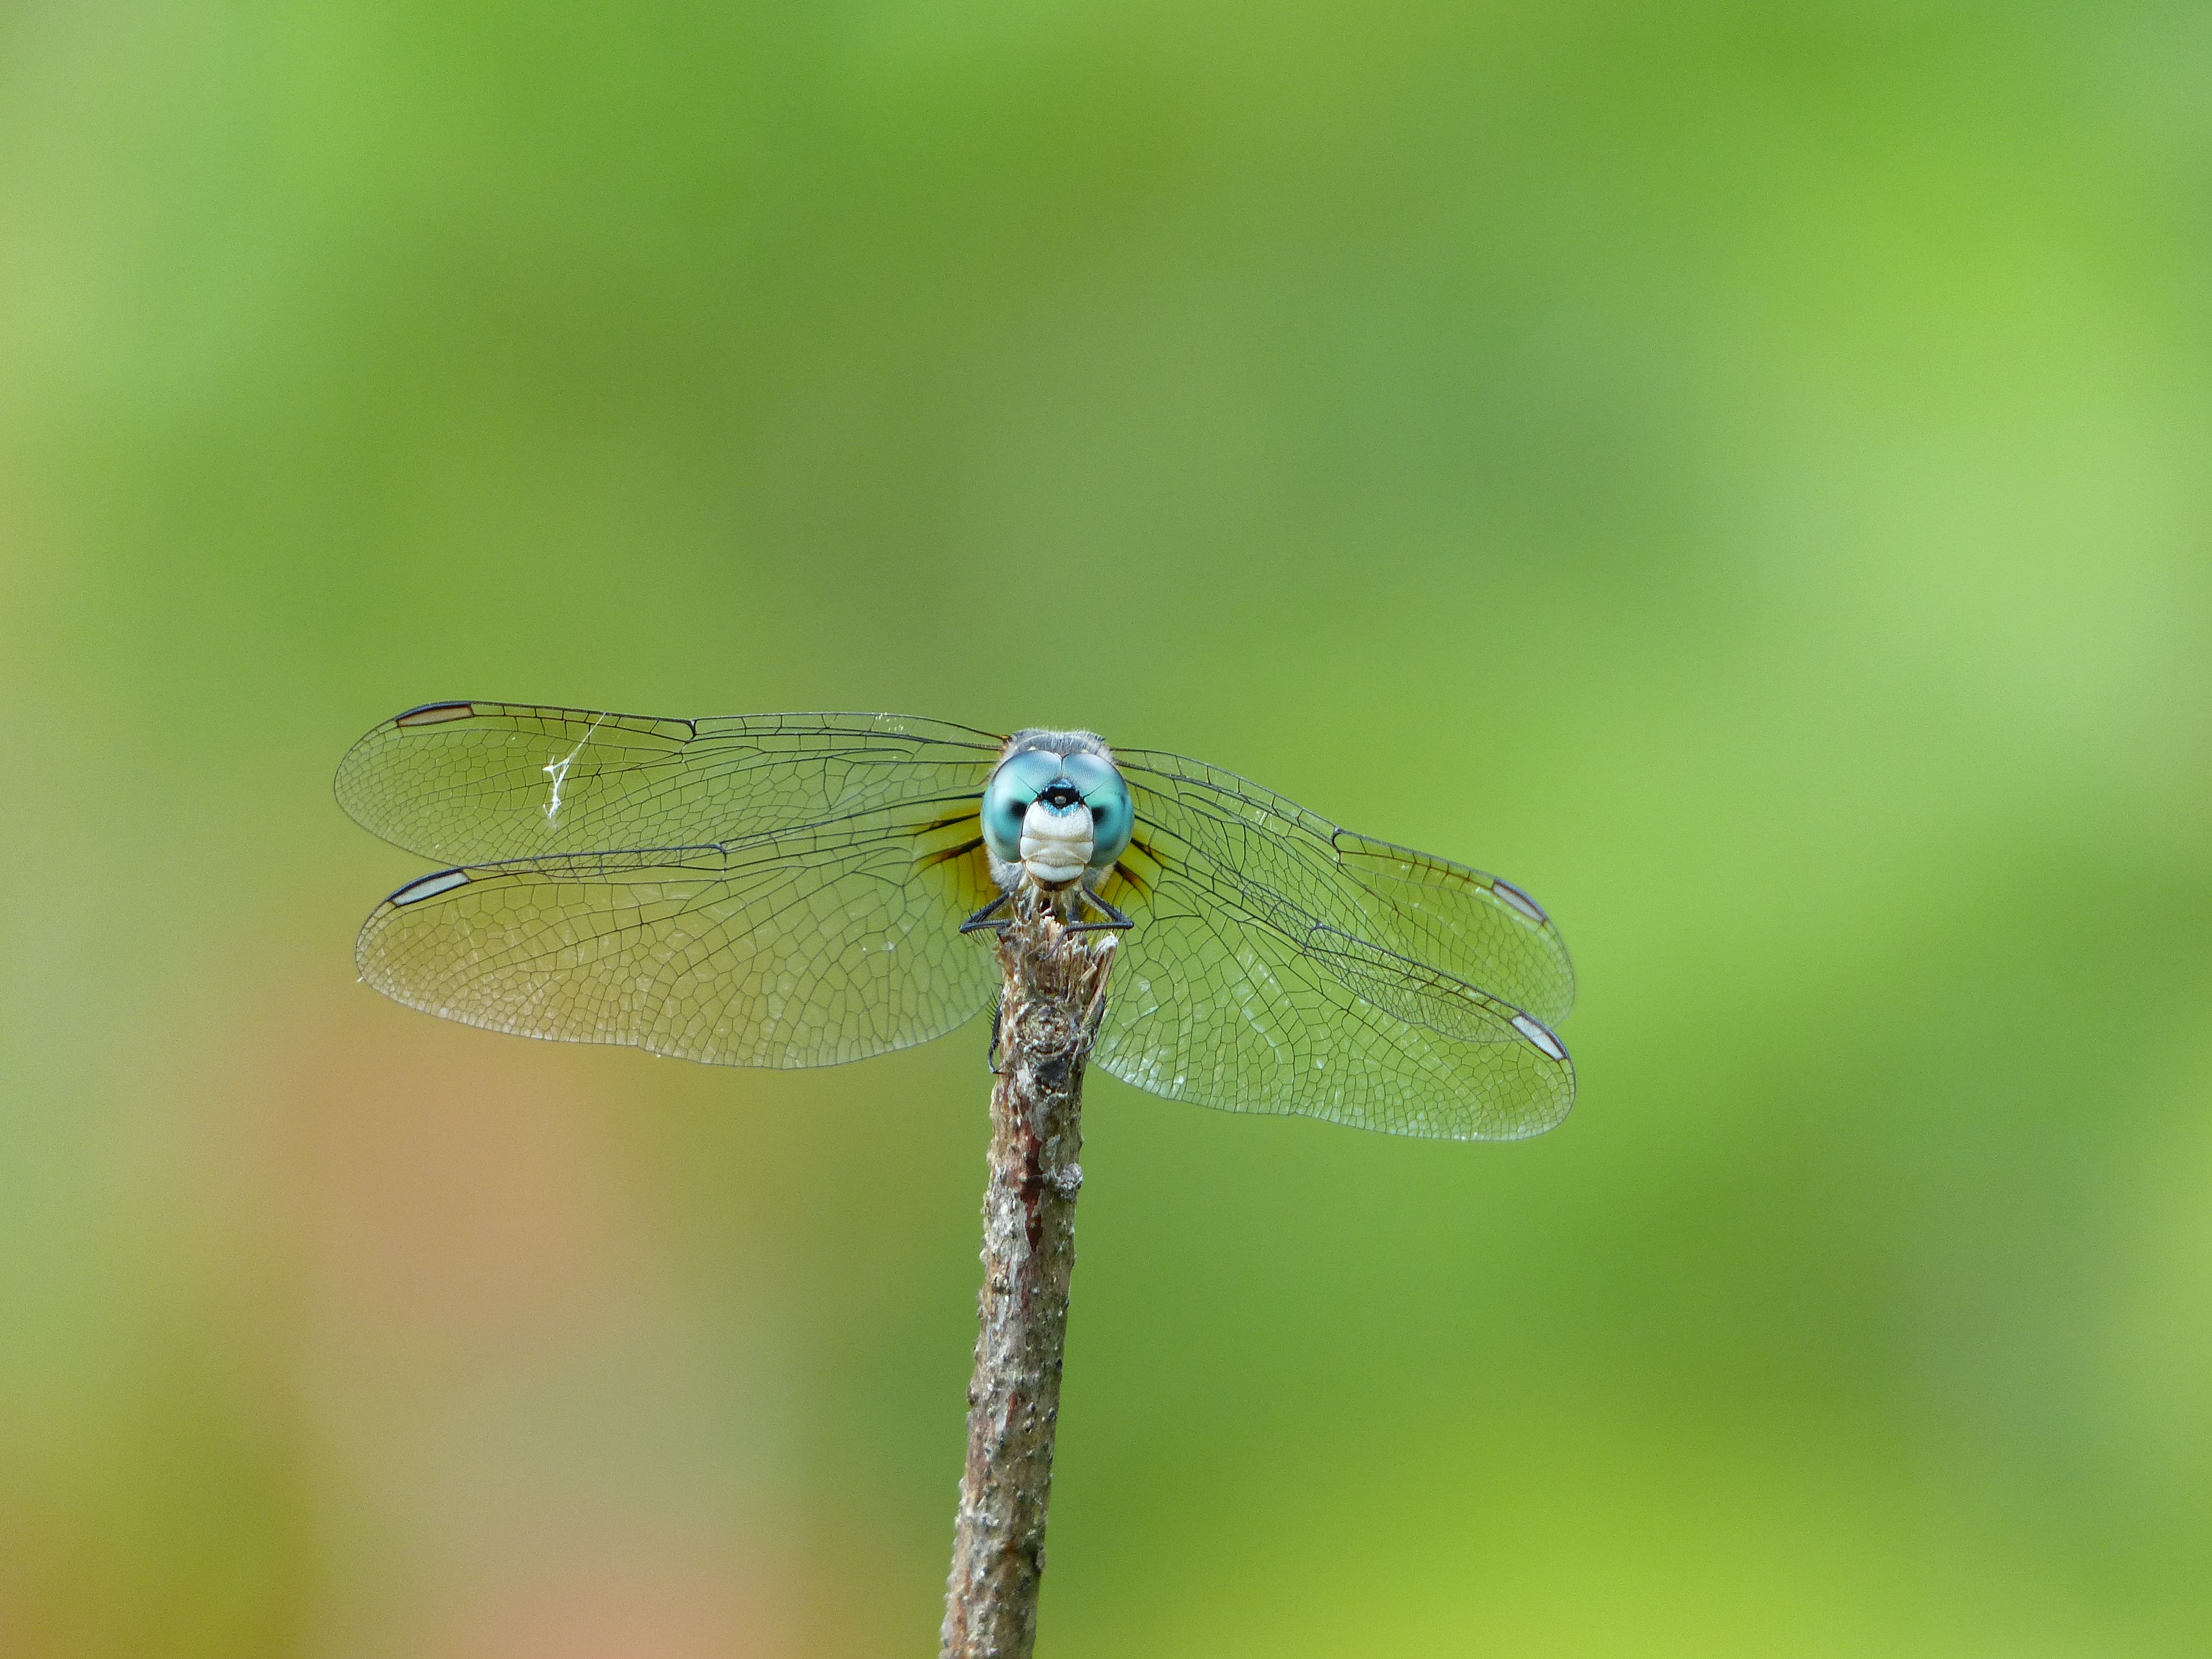 A male blue dasher is perched on a twig with its wings folded forward.